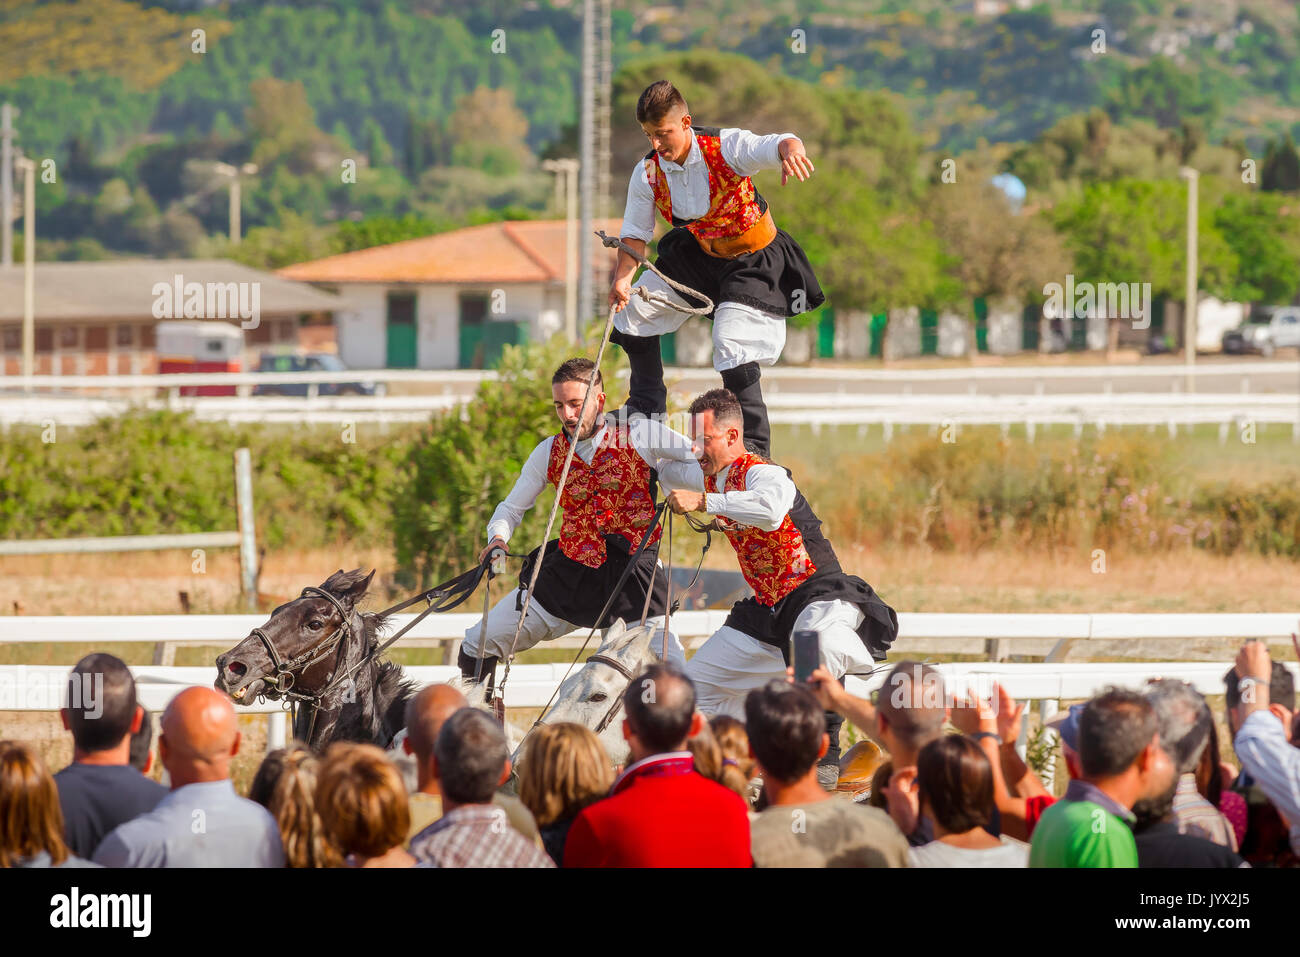 Sardinia horse riding, a three man team perform a traditional horse riding feat at the Ippodrome race track during the Cavalcata festival in Sassari. - Stock Image